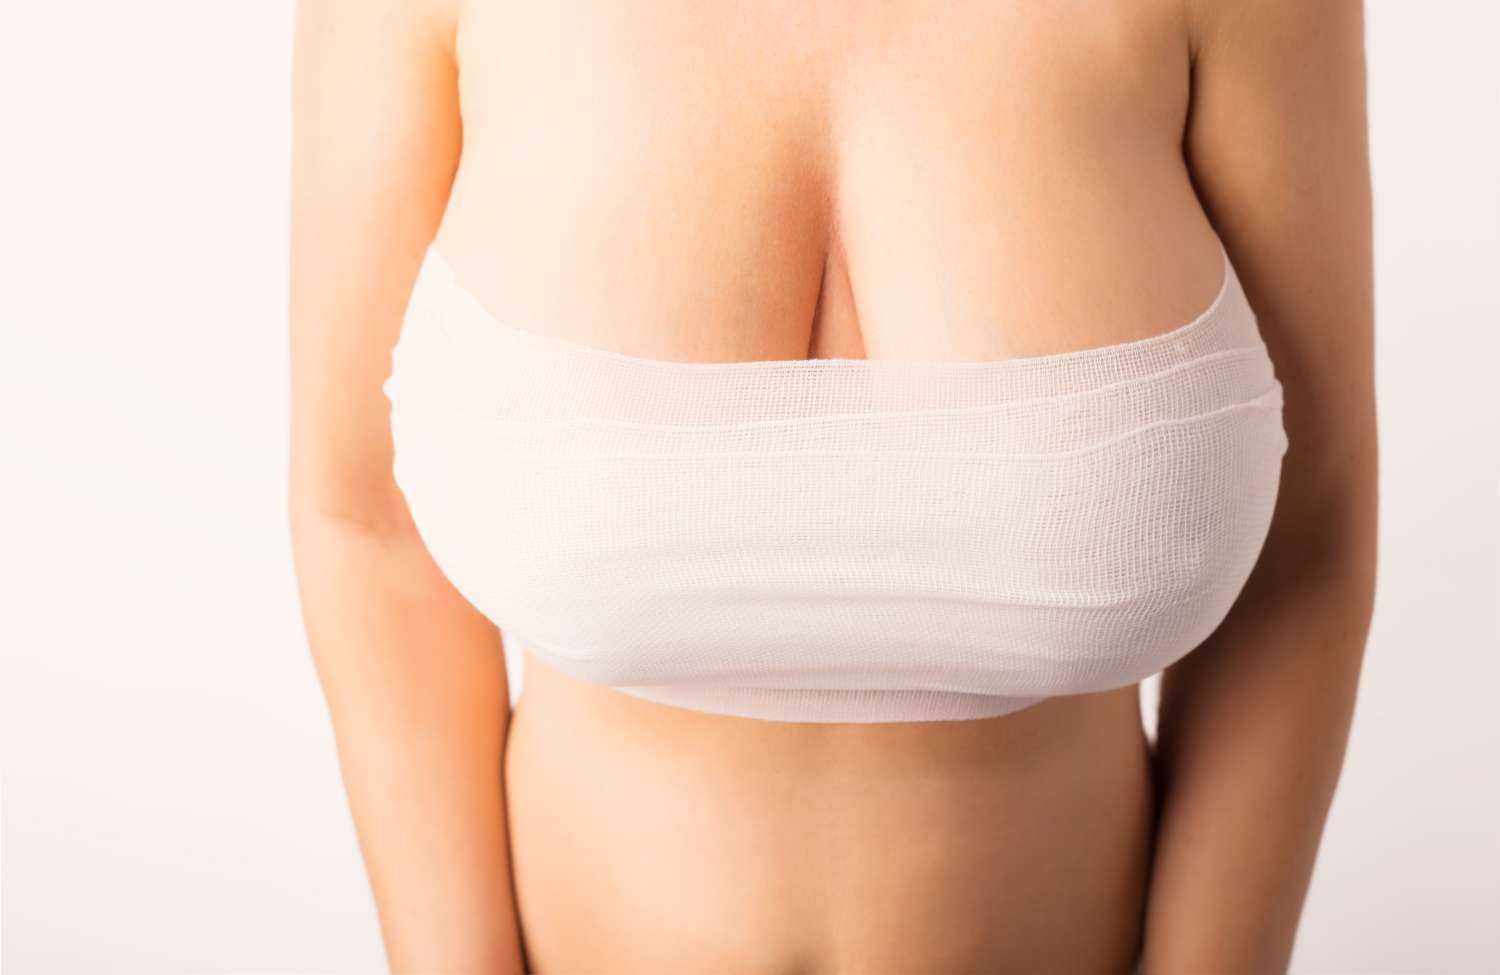 Stiffness in the shoulder after breast implant surgery